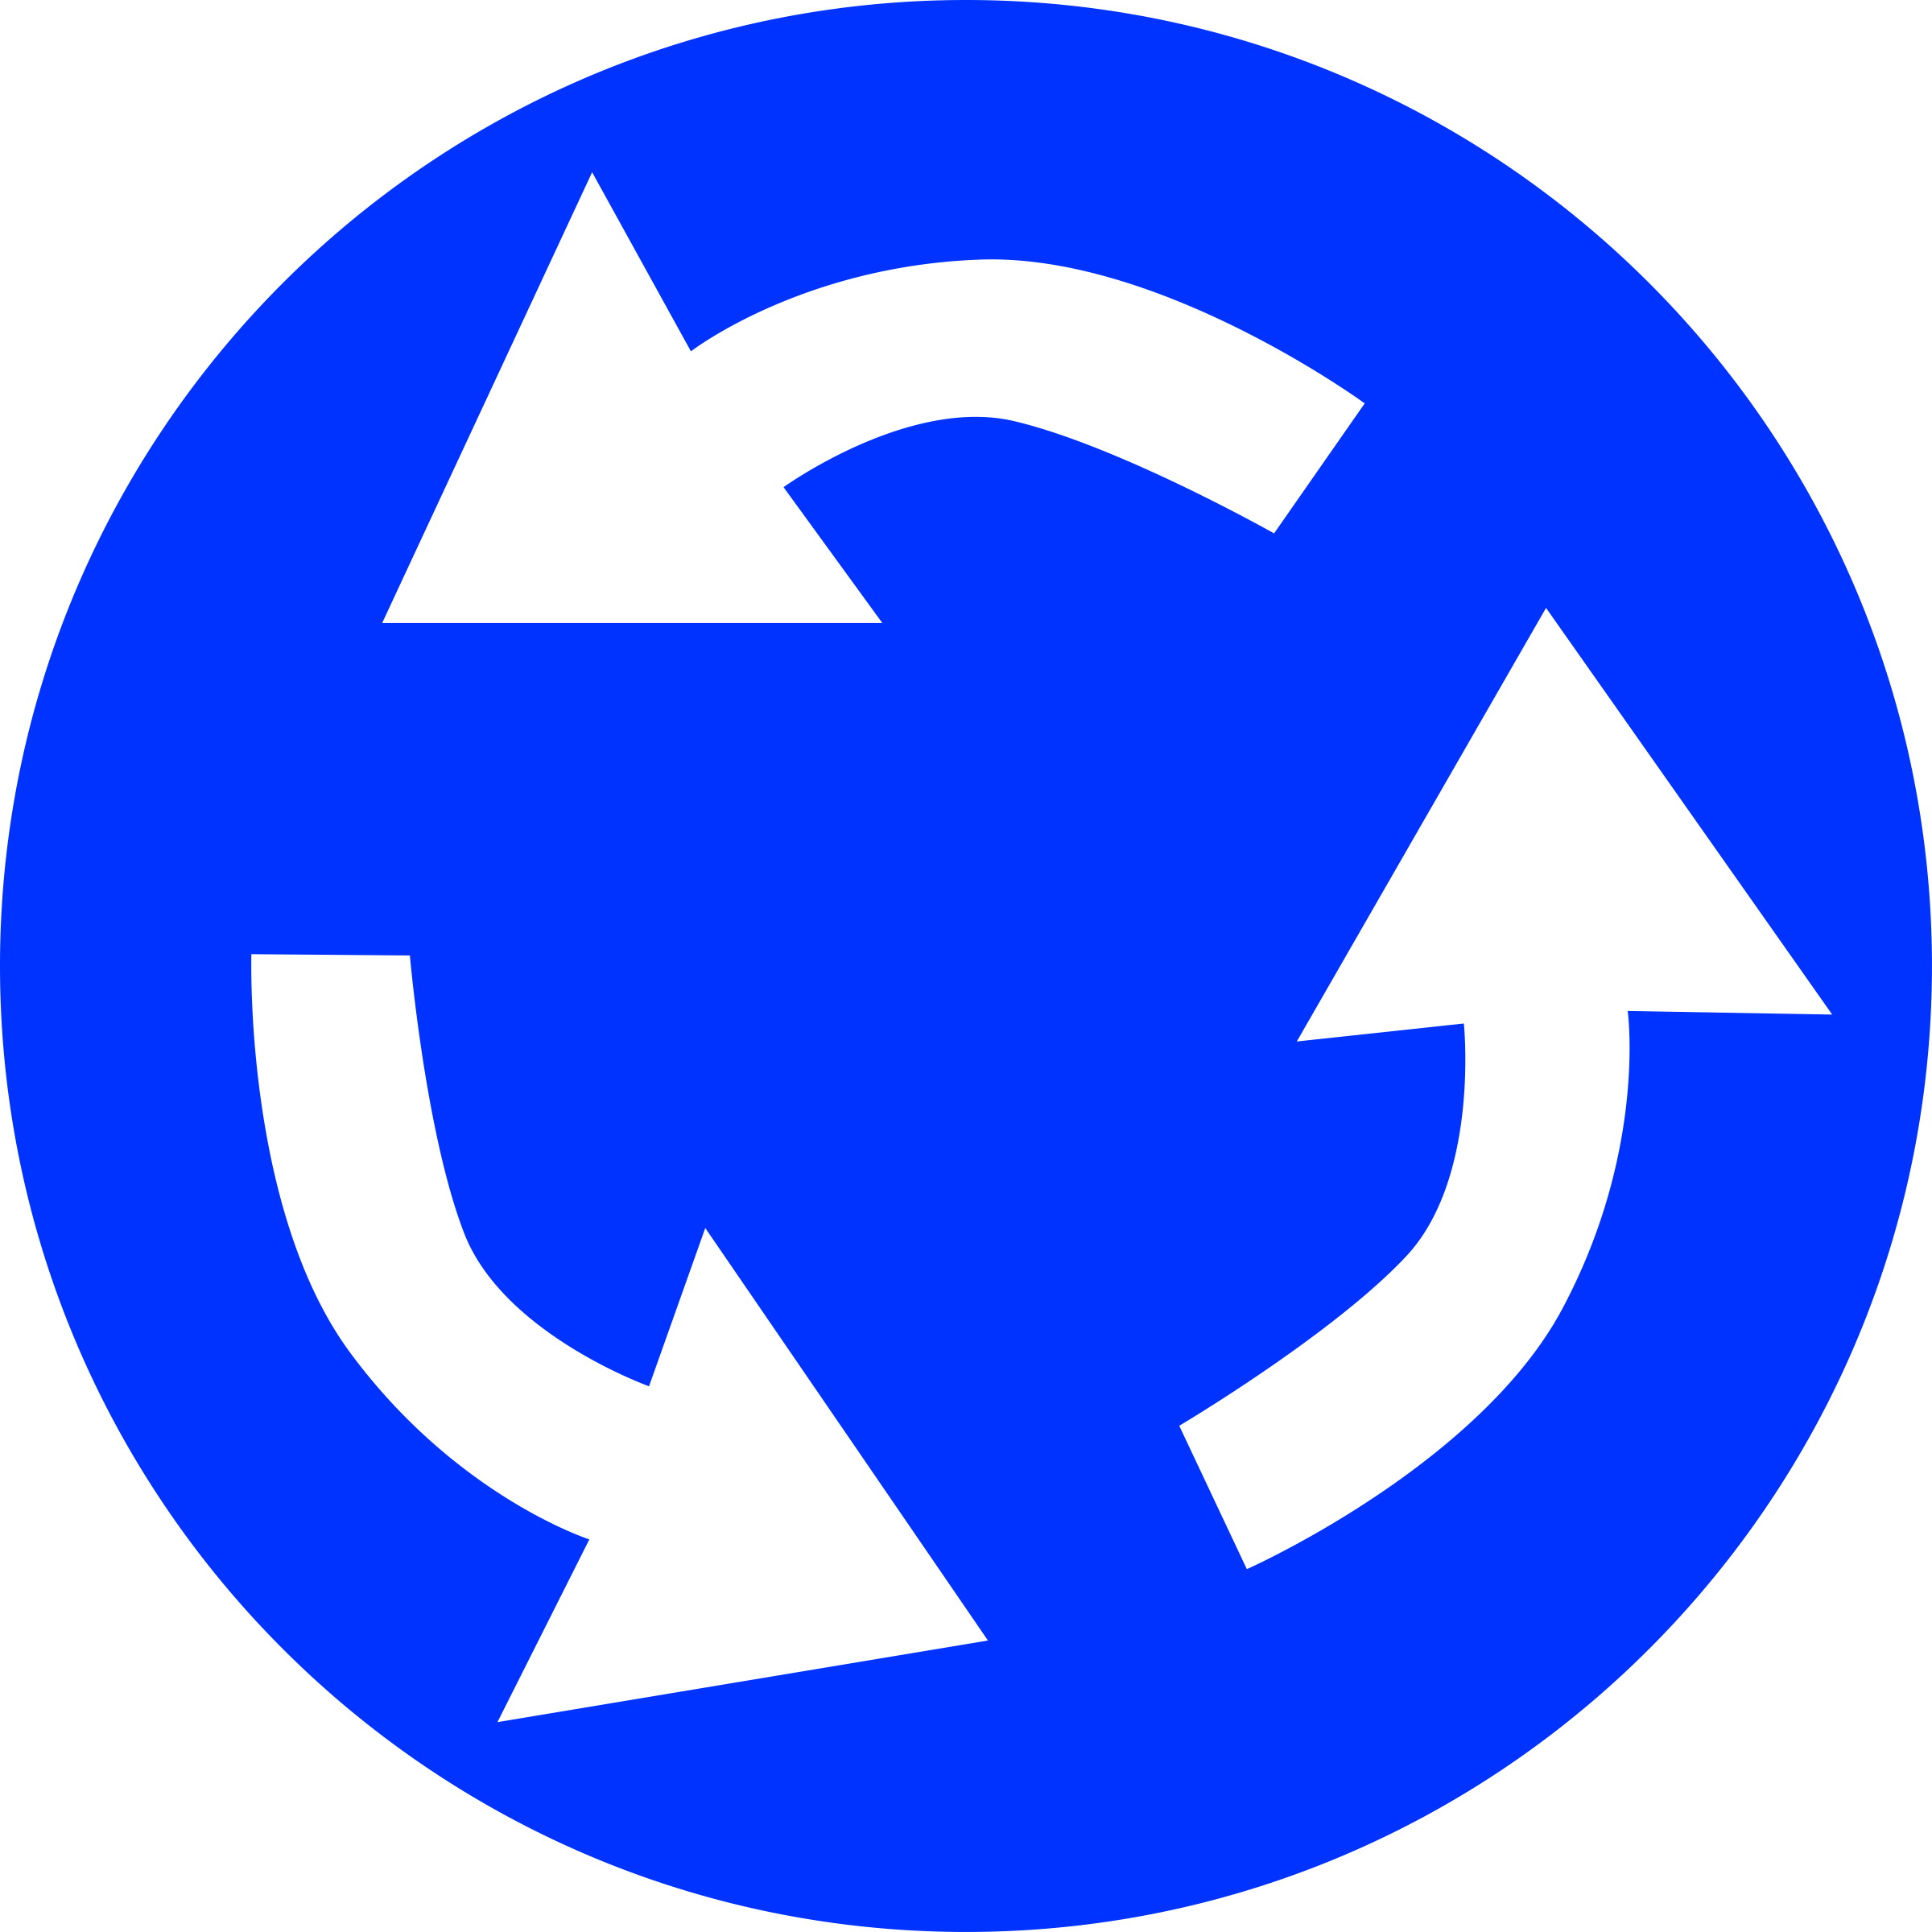 Roundabout clipart - Clipground